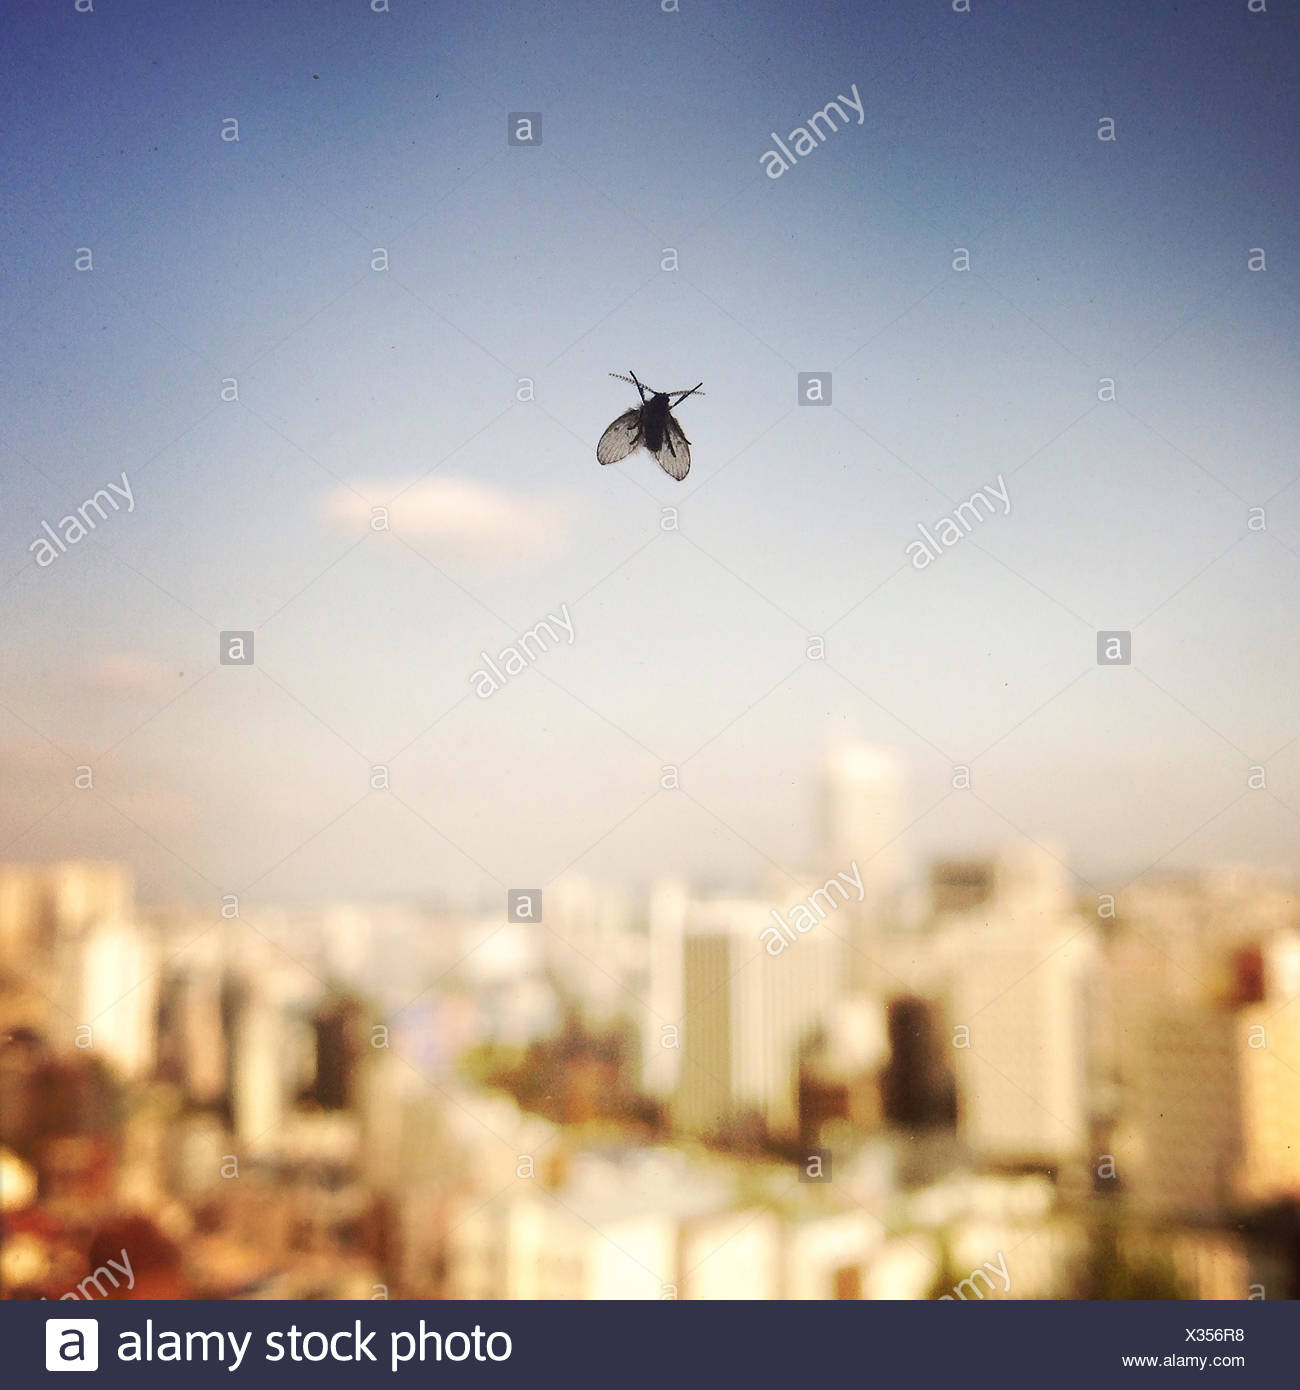 A fly on a hotel window in central Seoul. - Stock Image